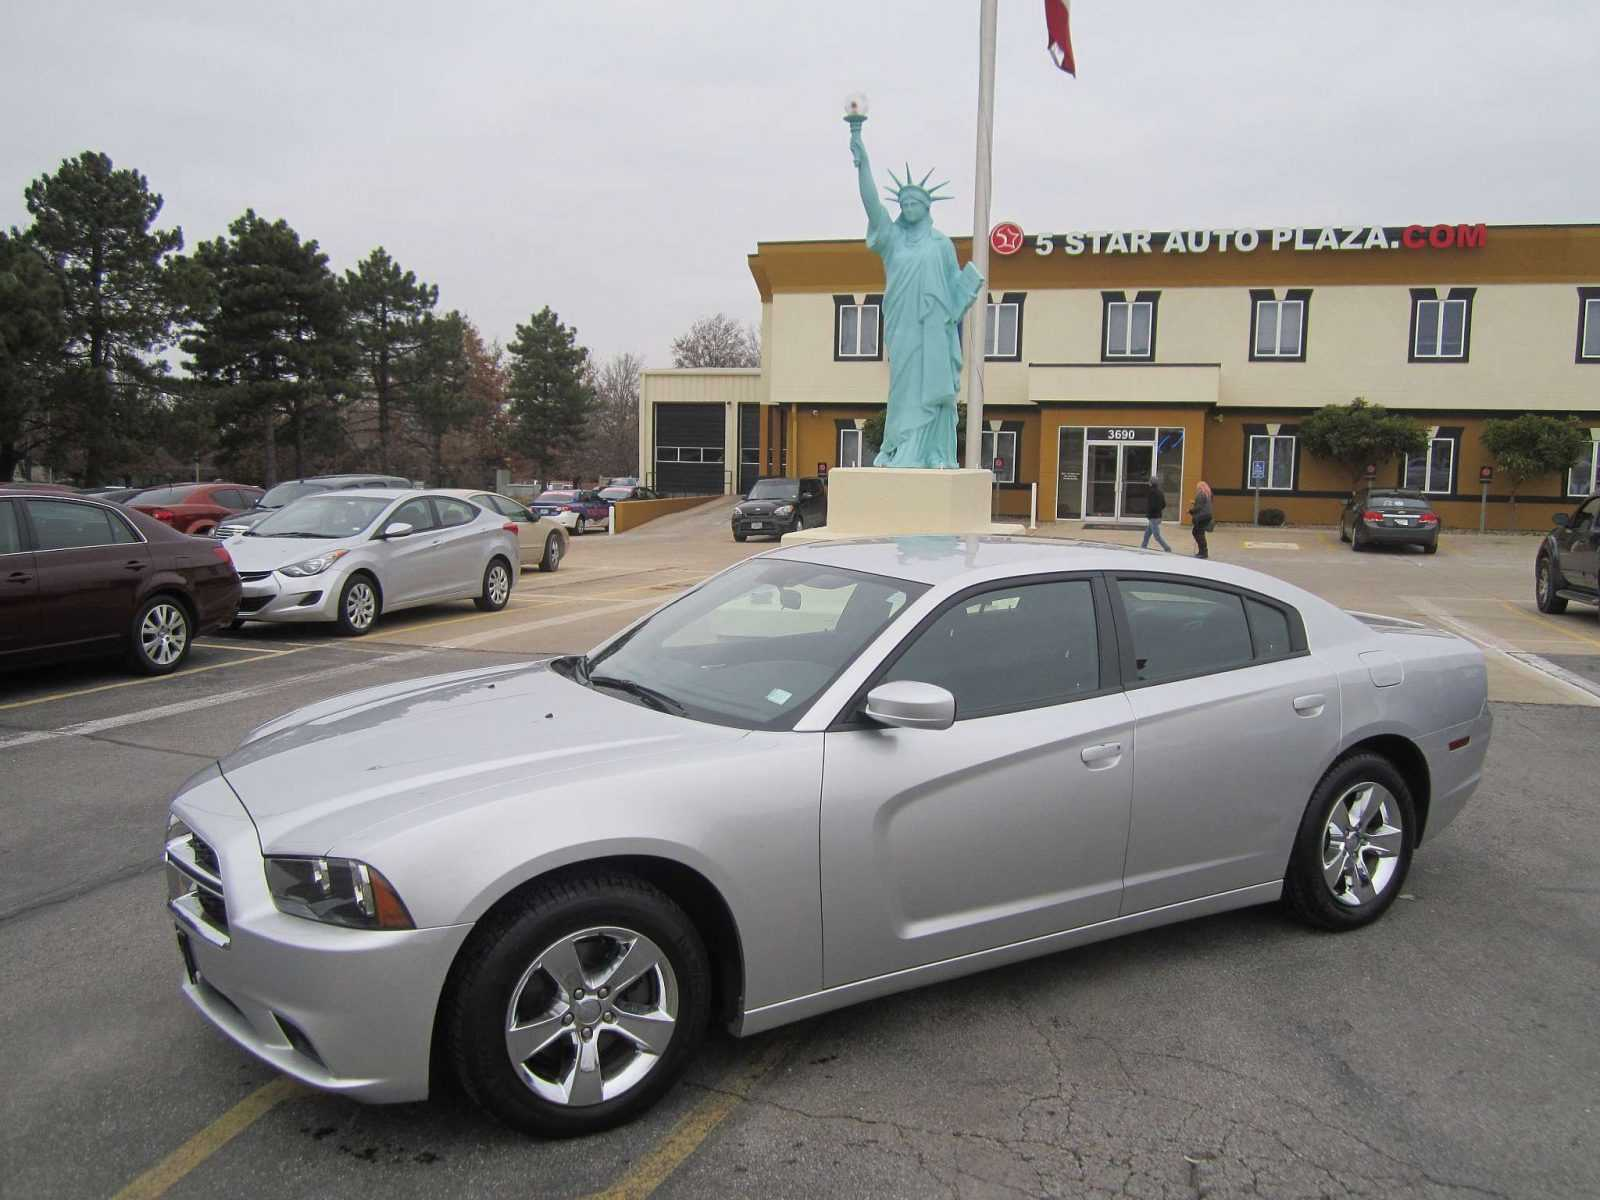 Pre-Owned Dodge Cars for Sale in St. Louis